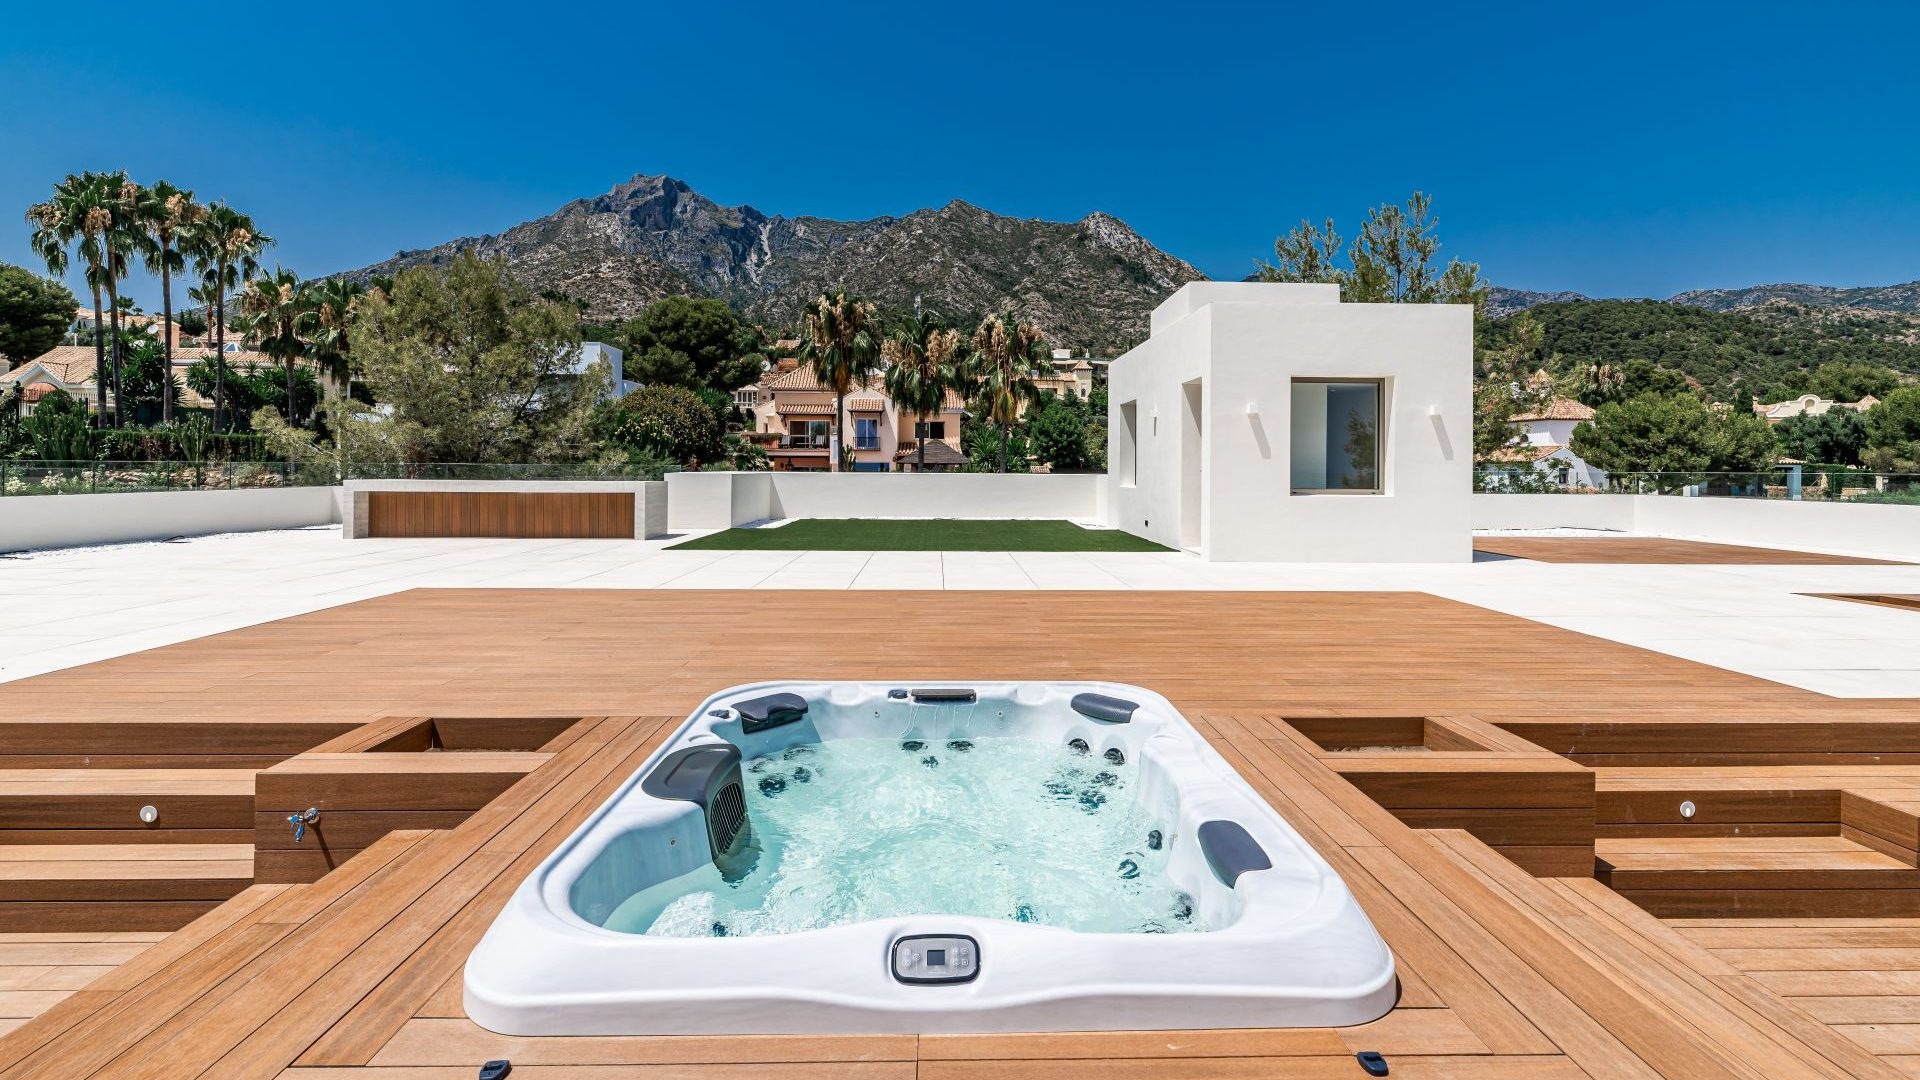 Jacuzzi with mountain views